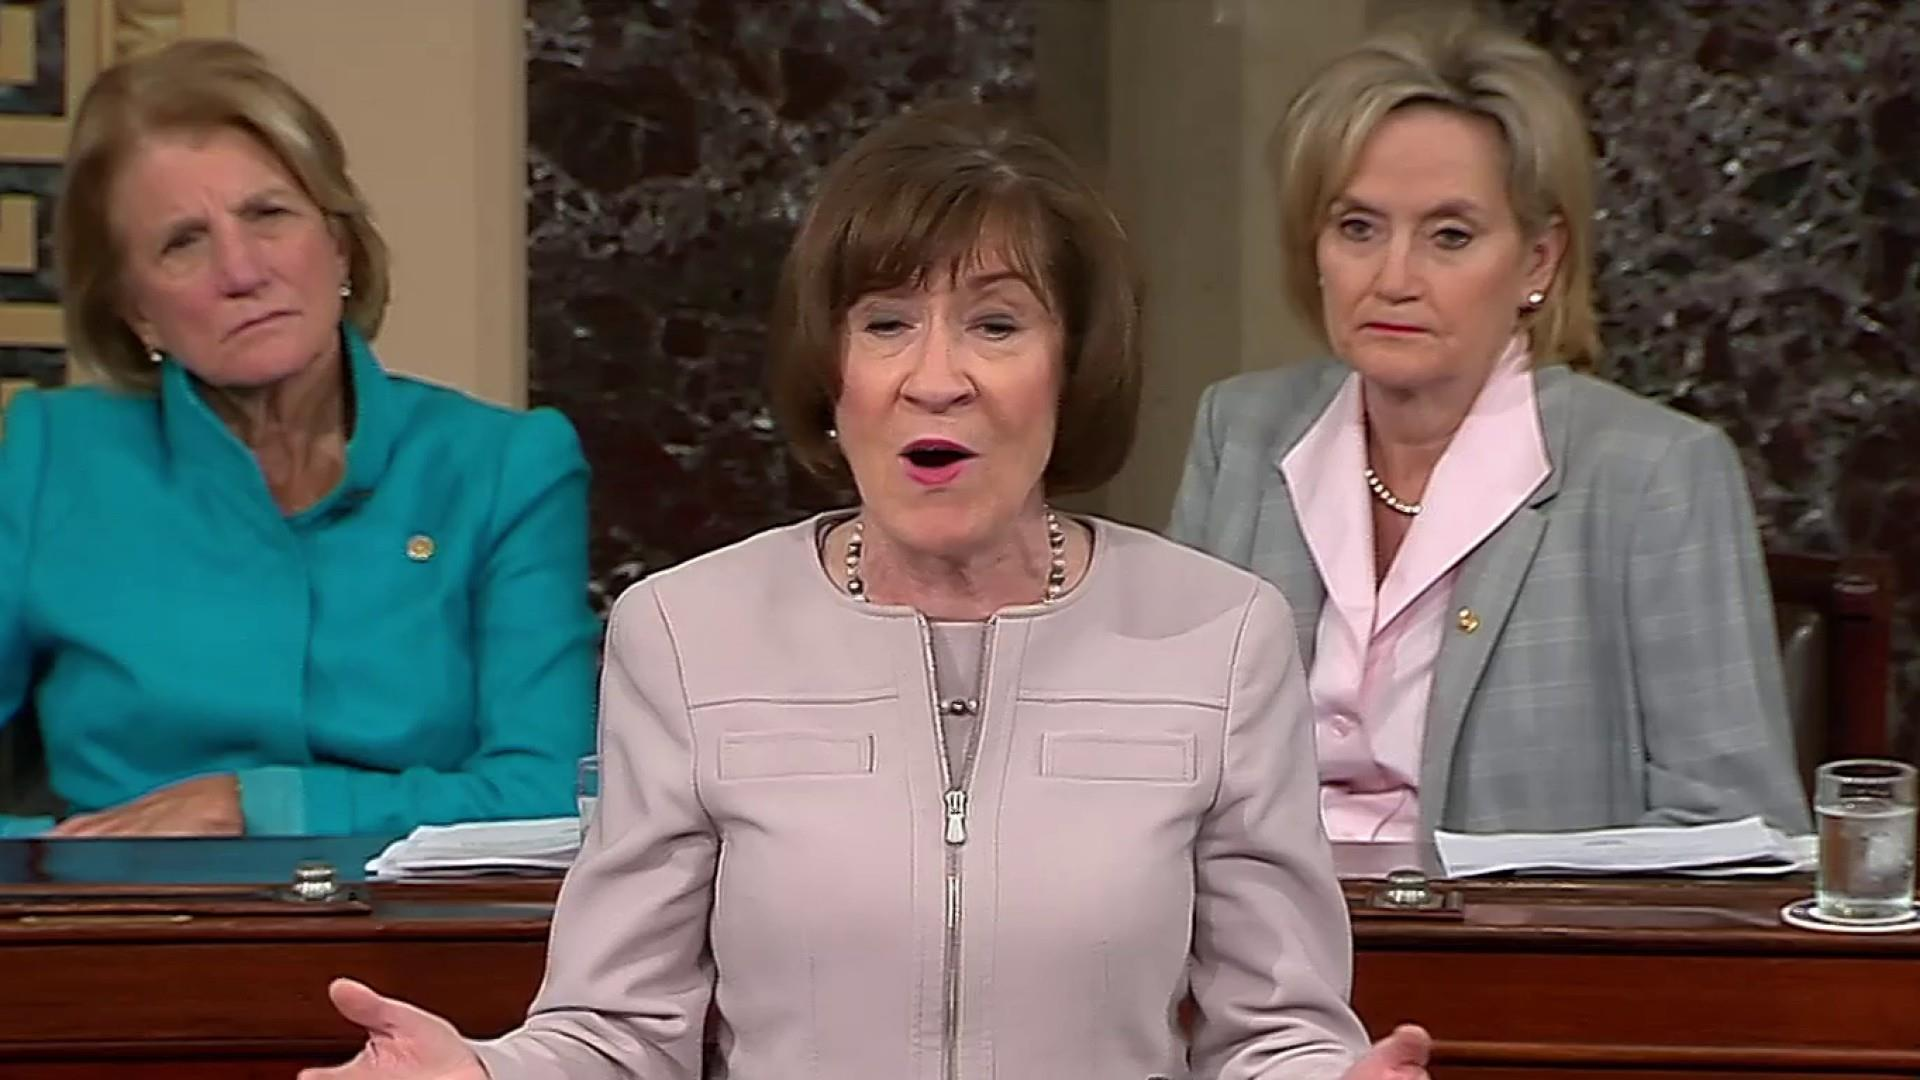 In defending Kavanaugh, Collins went further than Trump